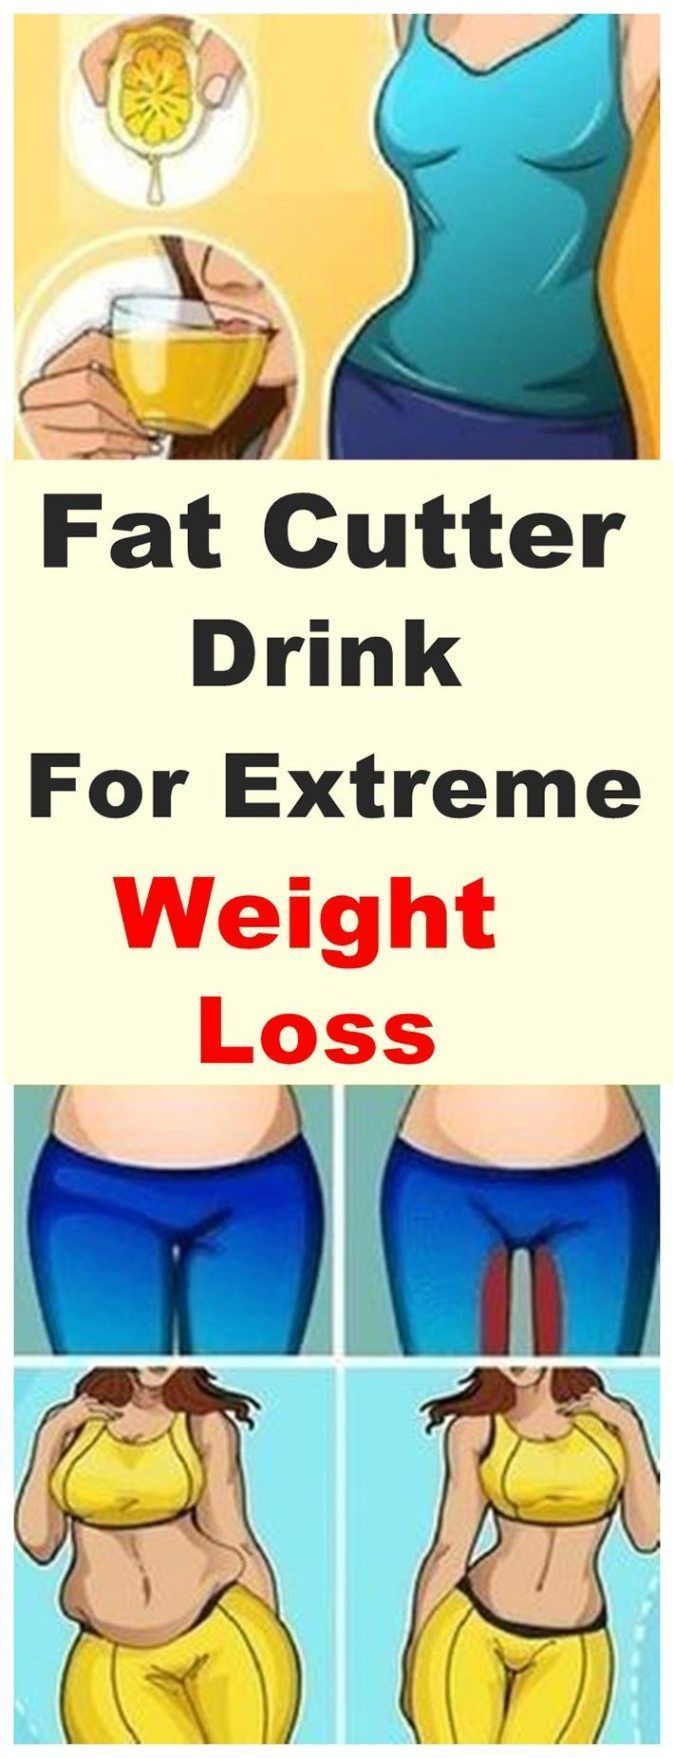 Easy n fast weight loss tips #looseweight  | drastic weight loss methods that work#weightlossjourney...